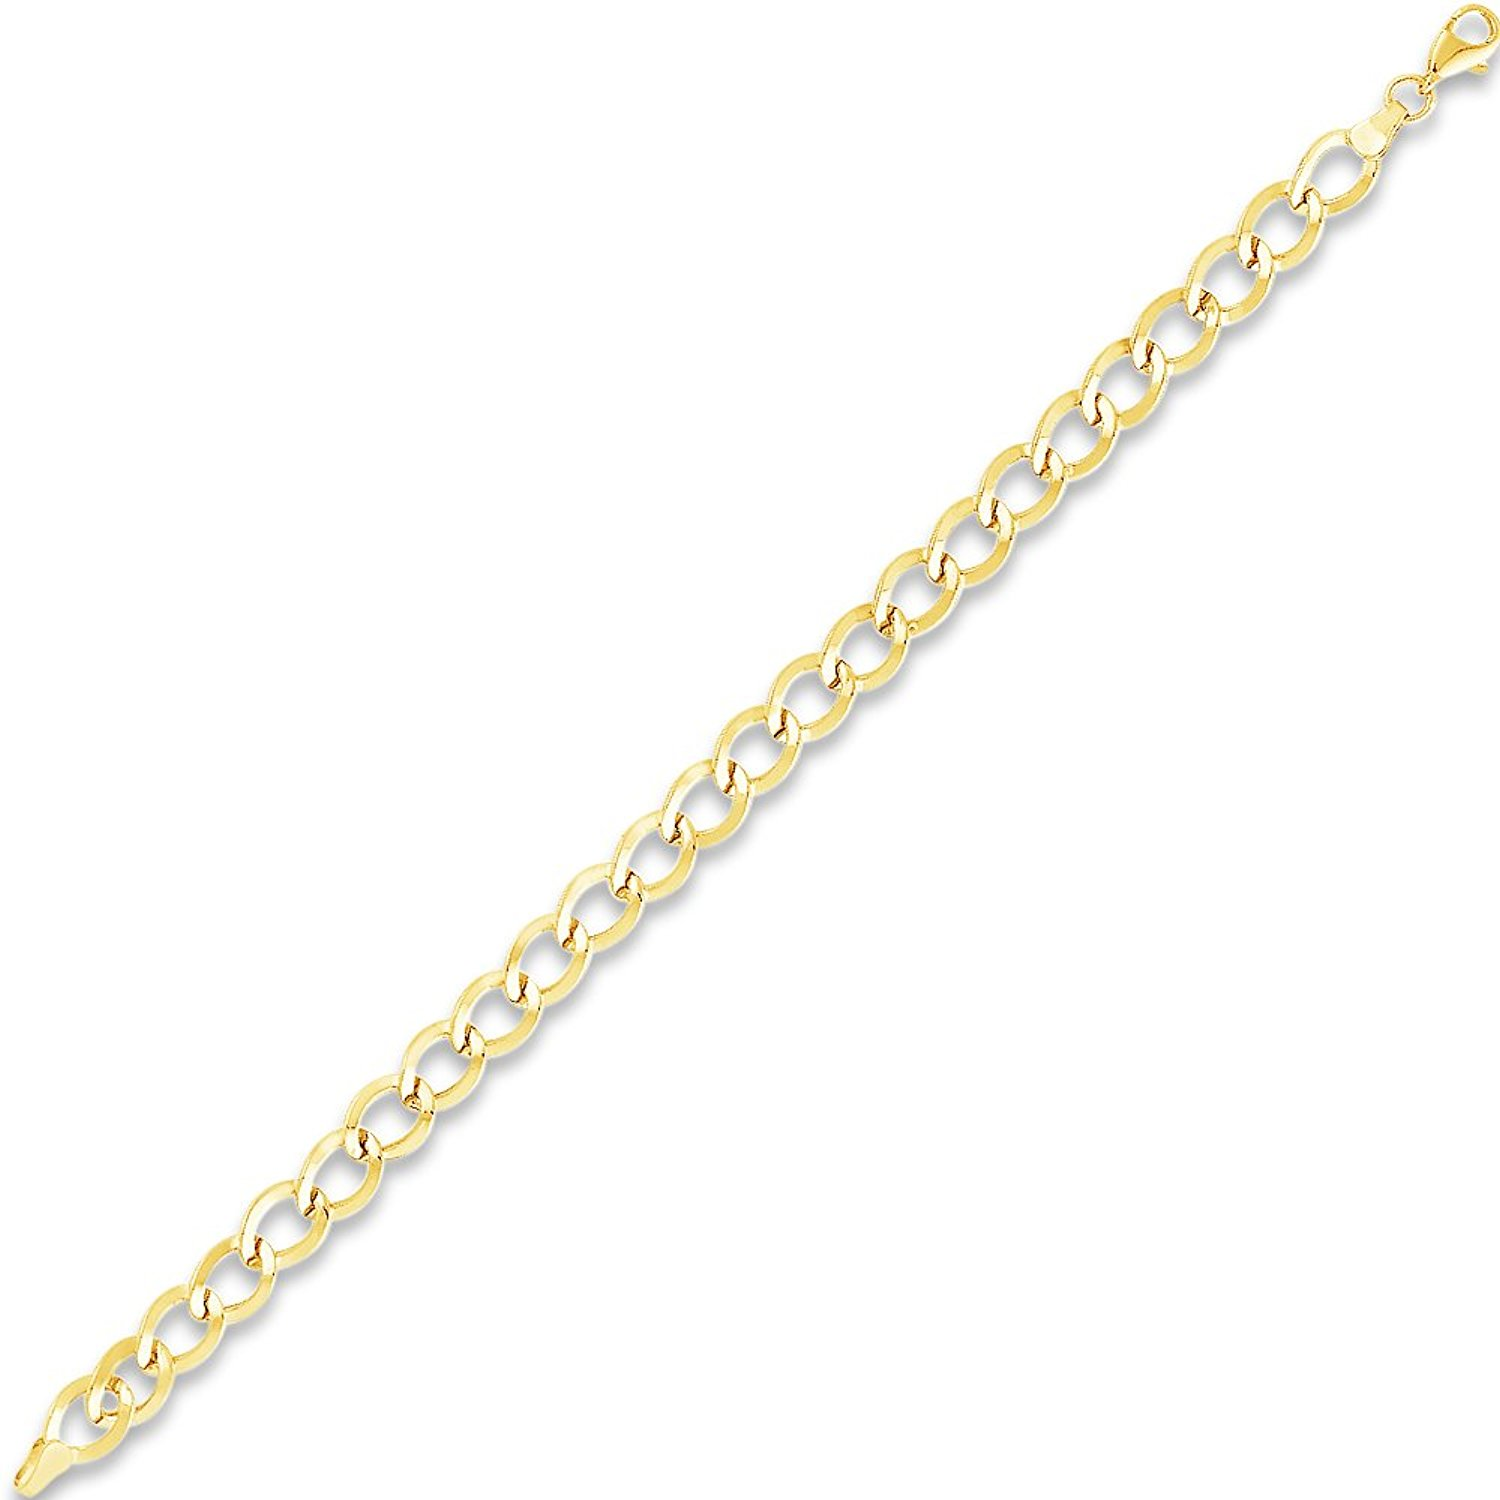 The Bling Factory Small 2mm 14k Gold Plated Stainless Steel Box Chain w//Lobster Claw Clasp Jewelry Polishing Cloth